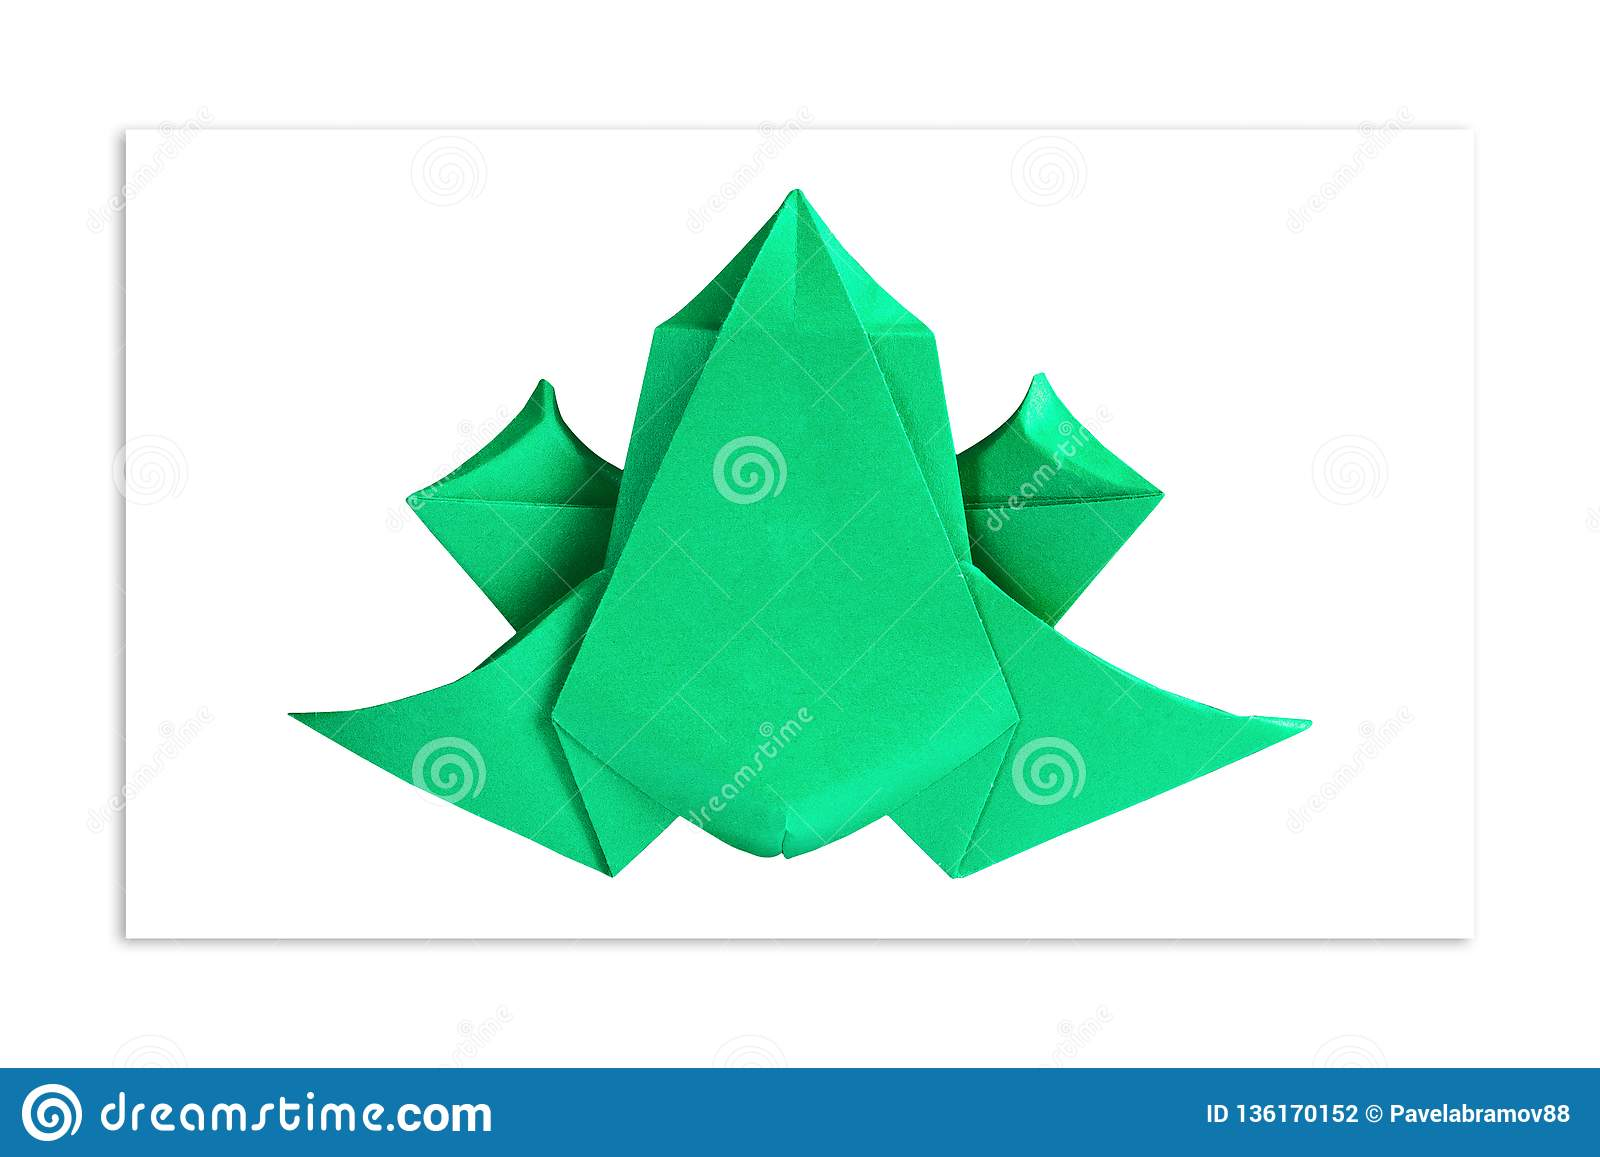 Origami. Bright green frog out of paper. The concept of minimalism